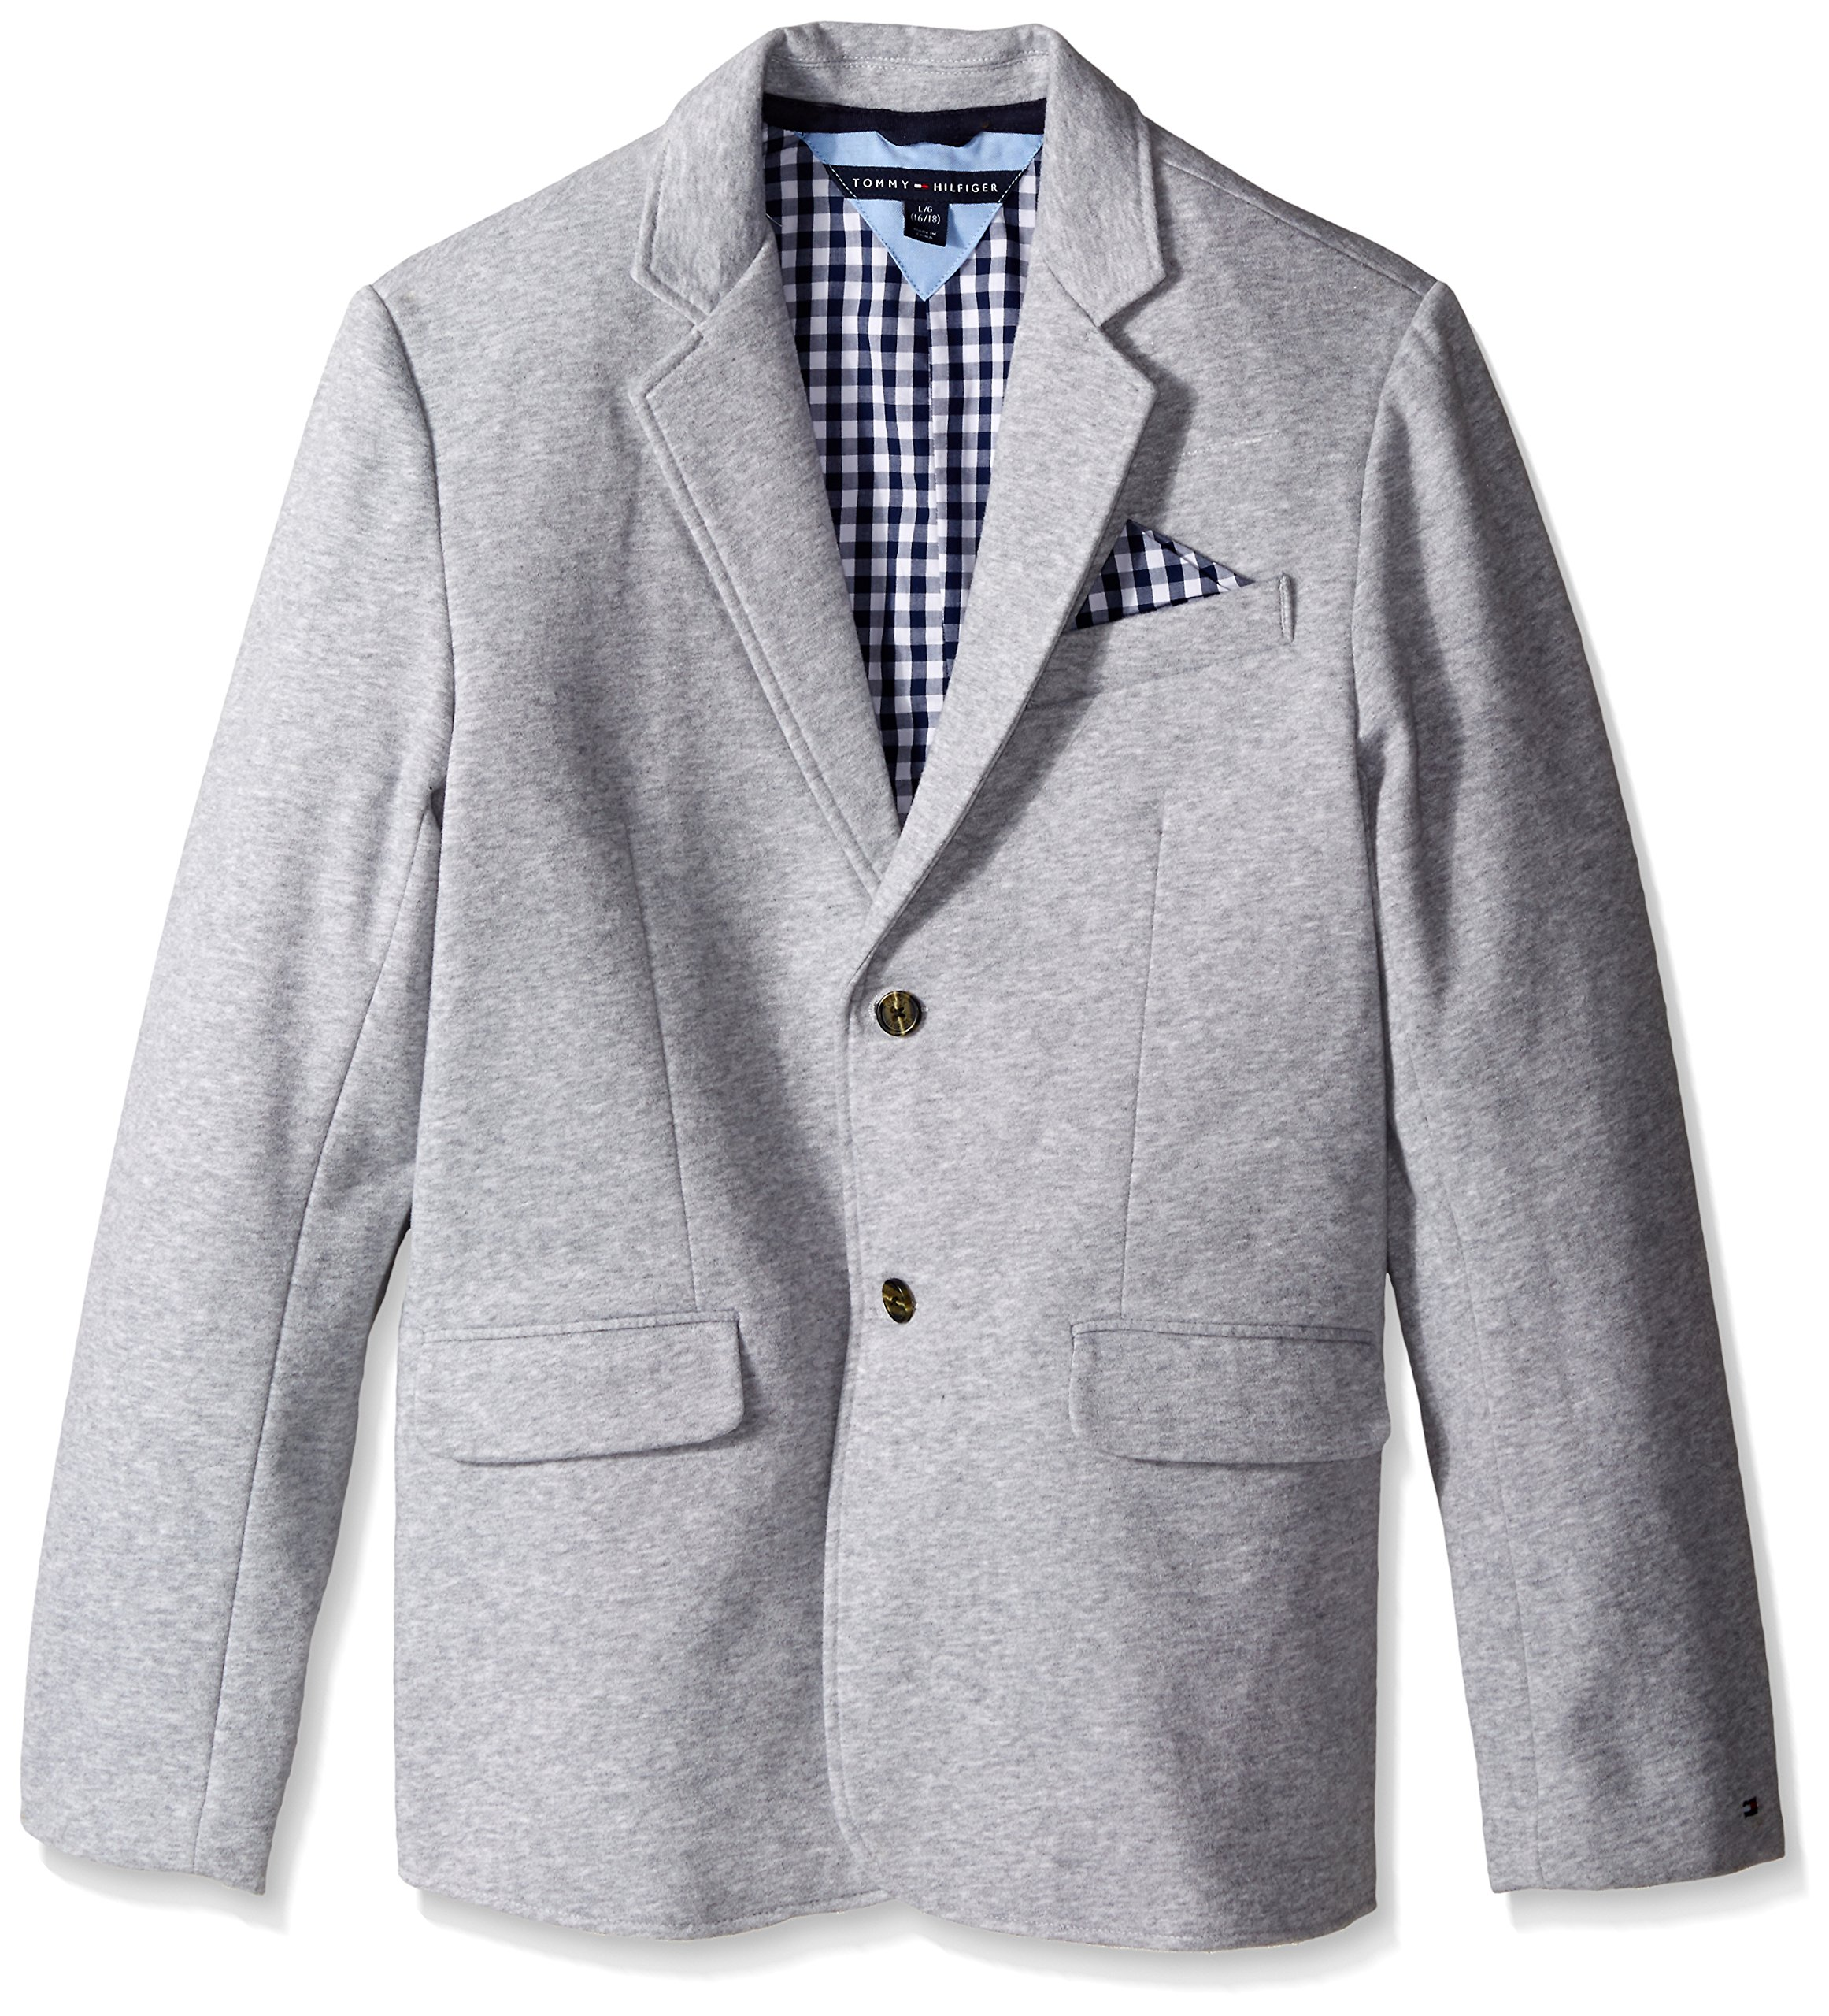 Tommy Hilfiger Little Boys' Knit Blazer with Gingham Lining, Grey Heather, 6